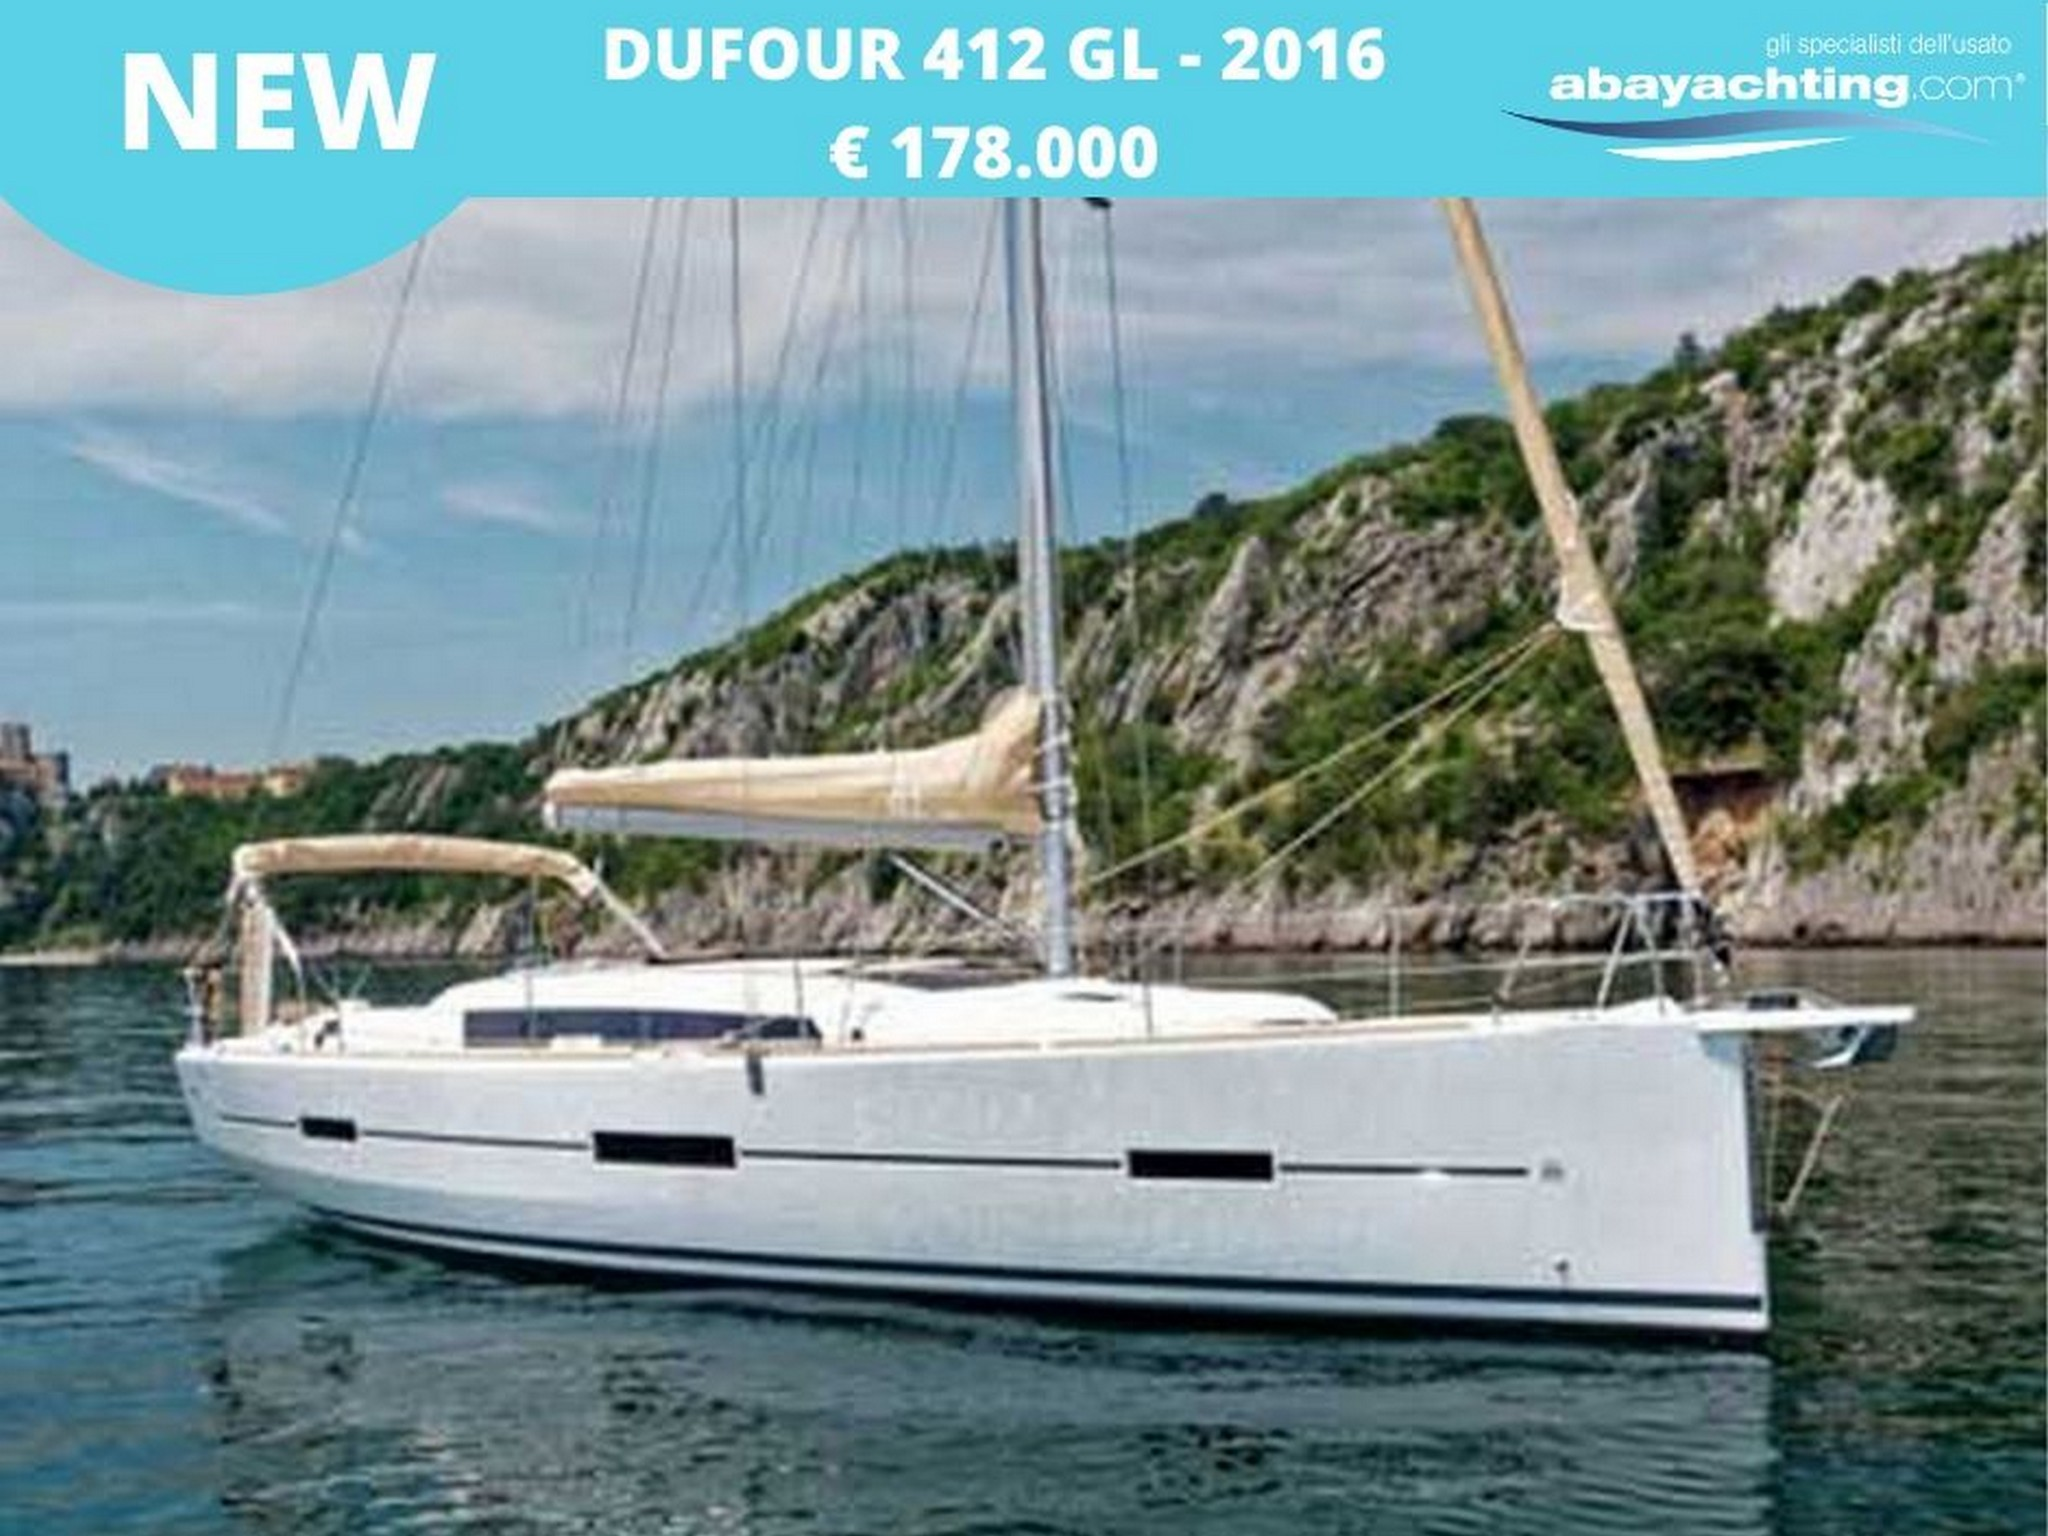 New arrival Dufour 412 Grand Large